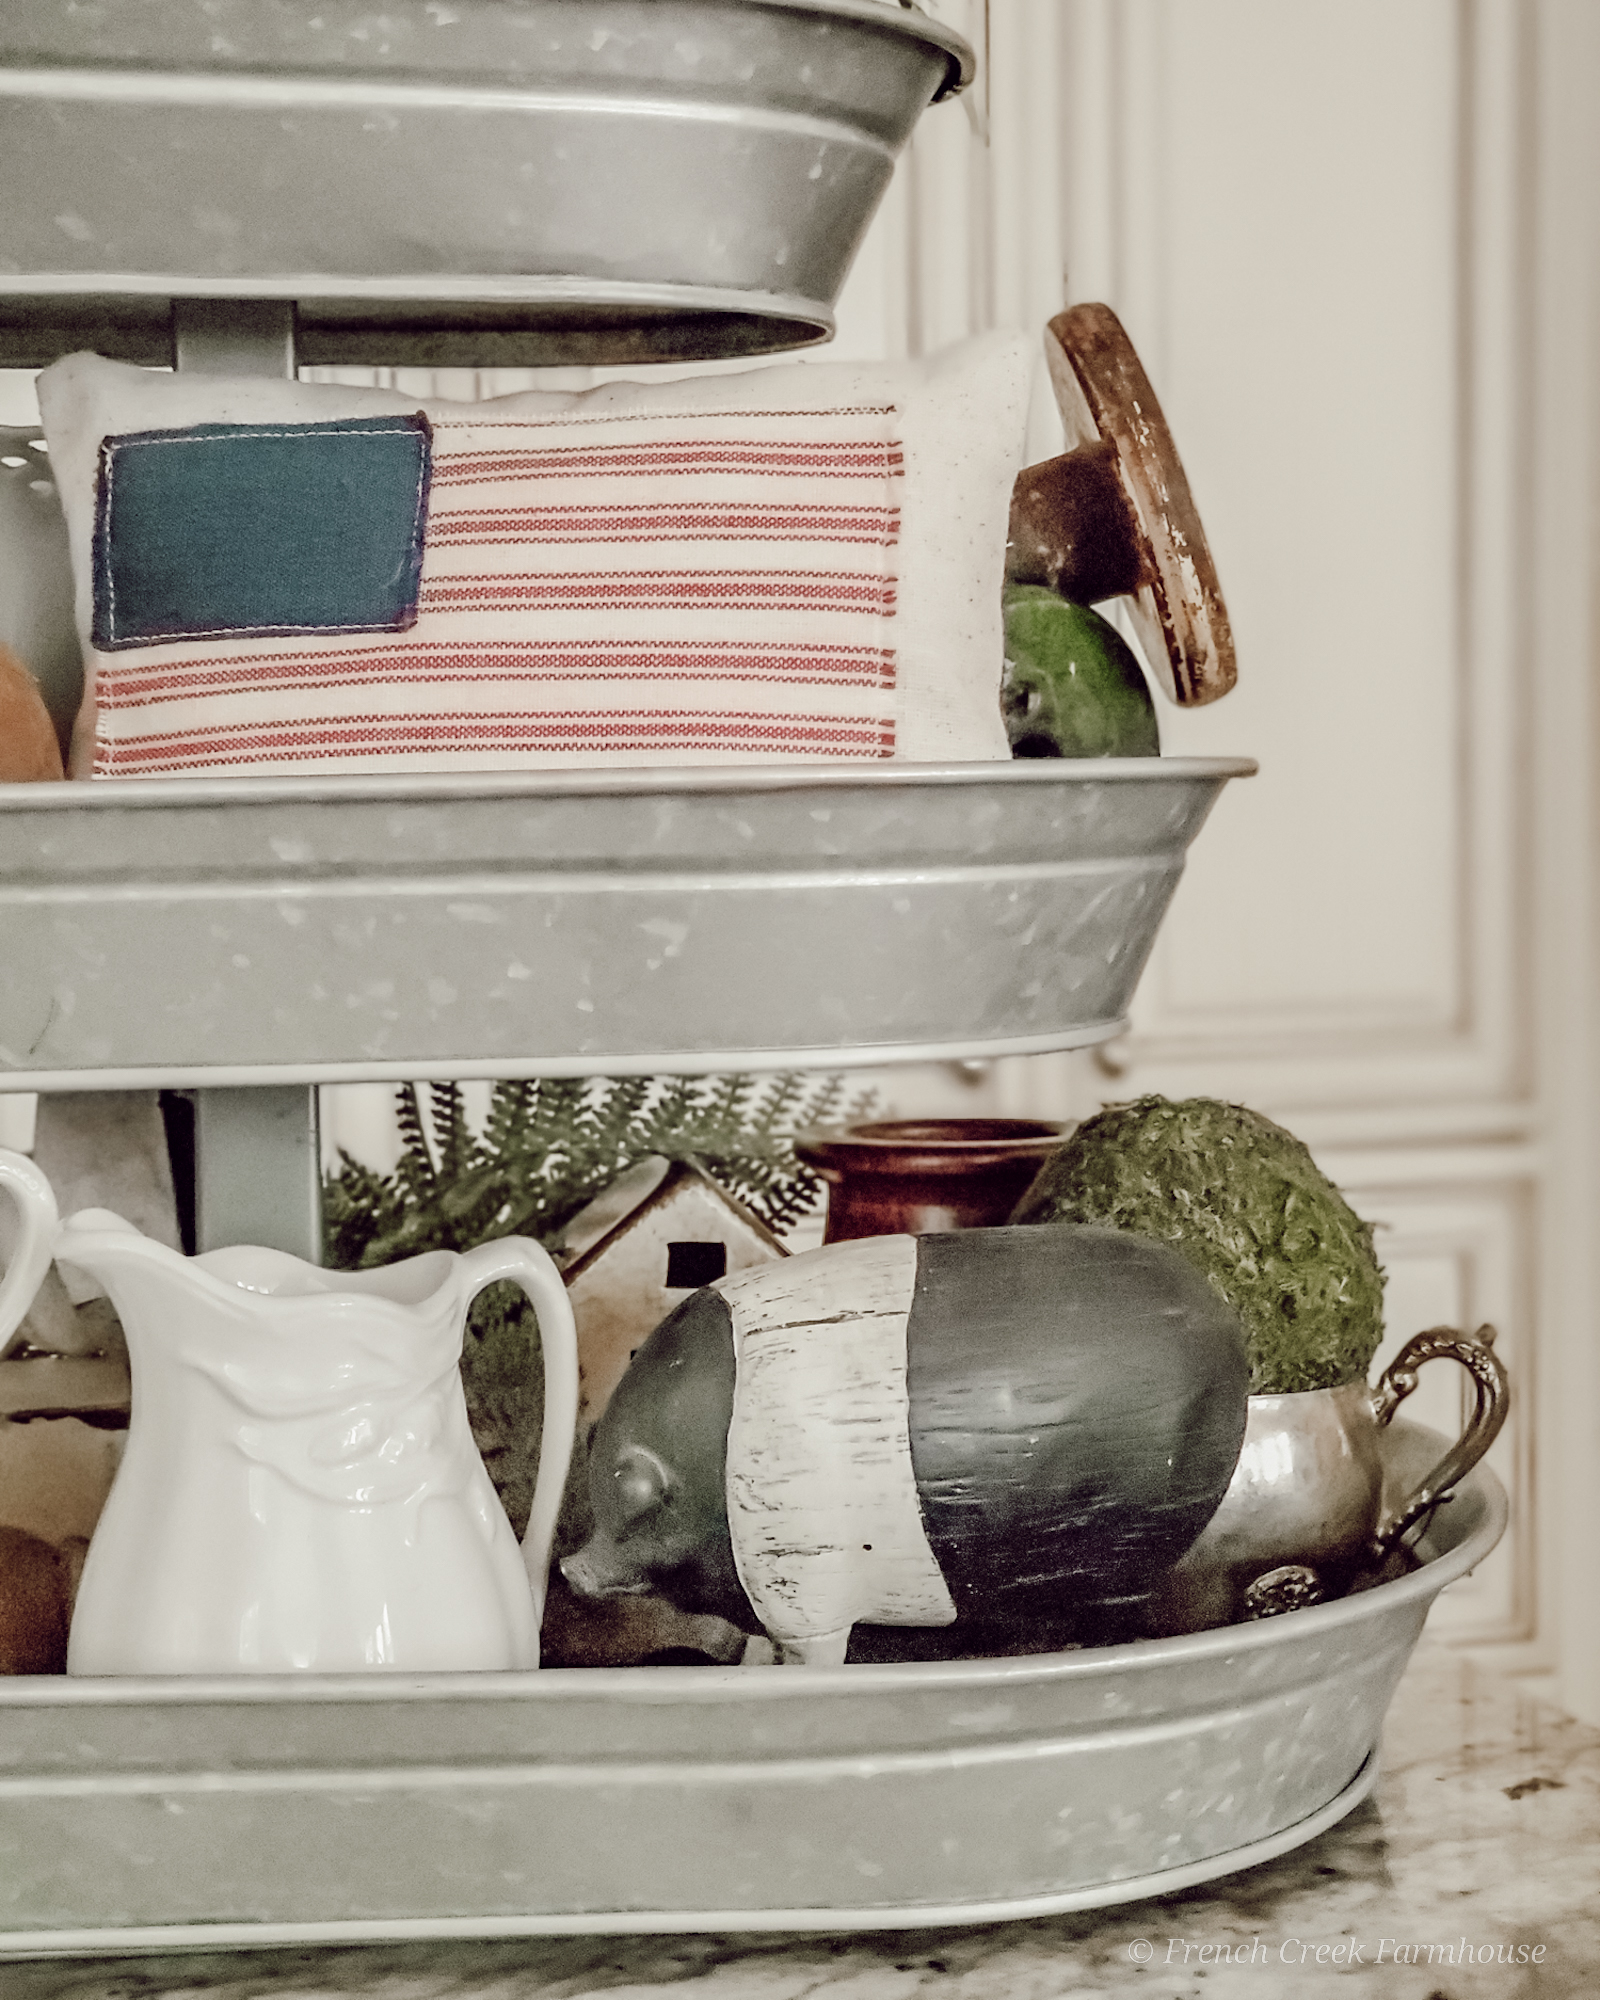 Vintage ironstone pitcher and American flags for 4th of July